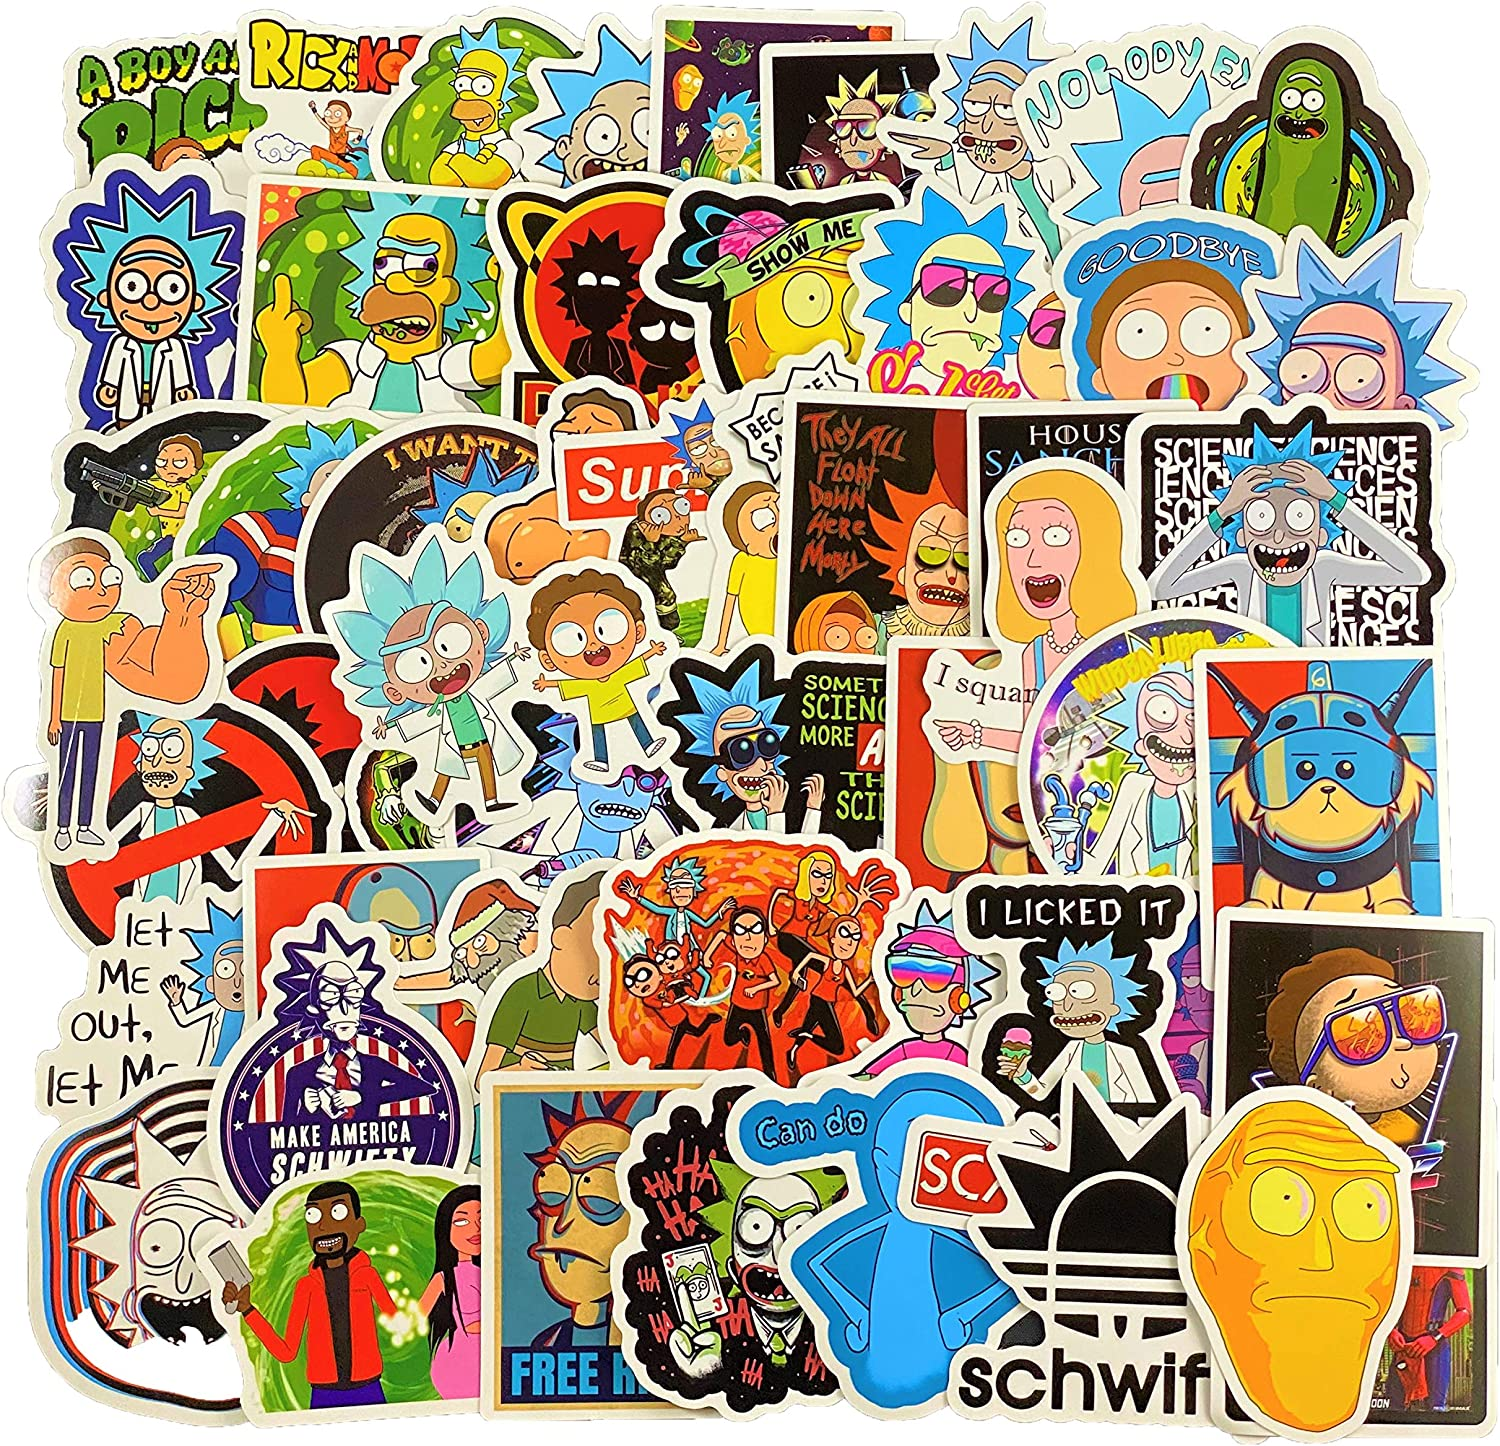 (66pcs) Cartoon Stickers Pack for Laptop Water Bottle Cars Motorcycle Hydro FlaskBicycle Skateboard Luggage Bumper Water Bottles, Waterproof, Extra Durable Vinyl